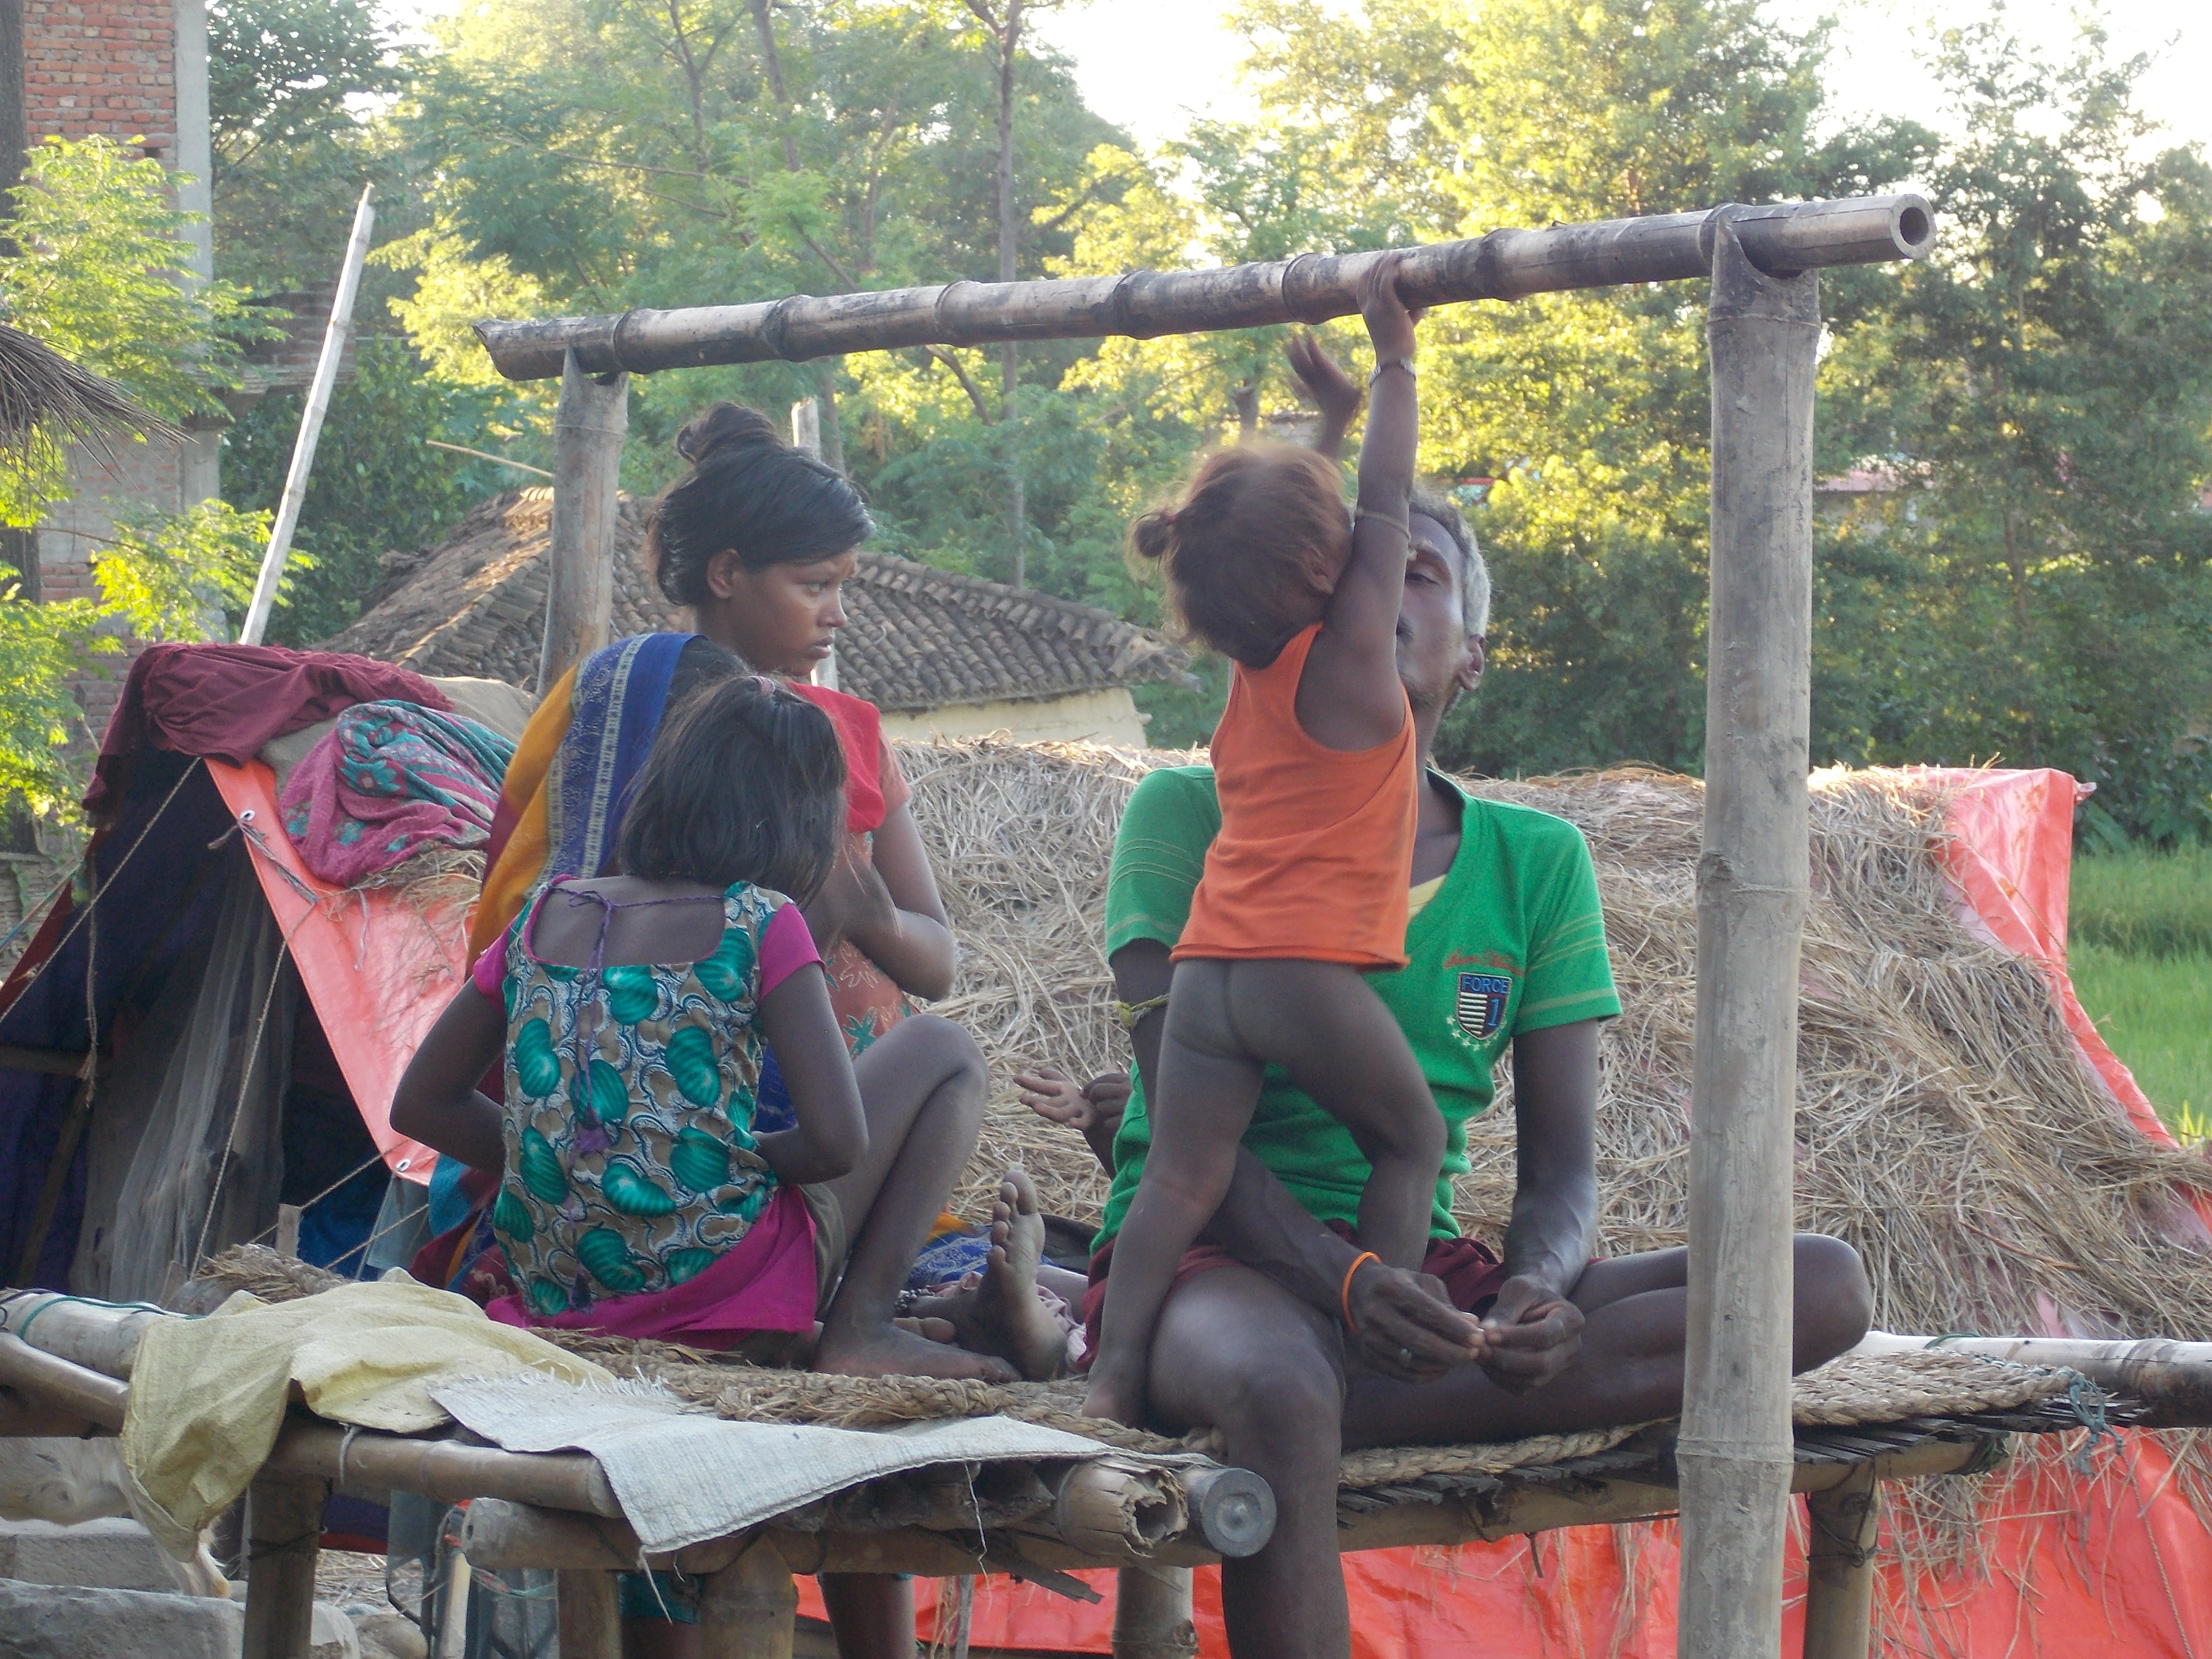 Post-Flood, THRD Alliance is constructing houses for the flood victims in Rautahat, Mahottari and Saptari.